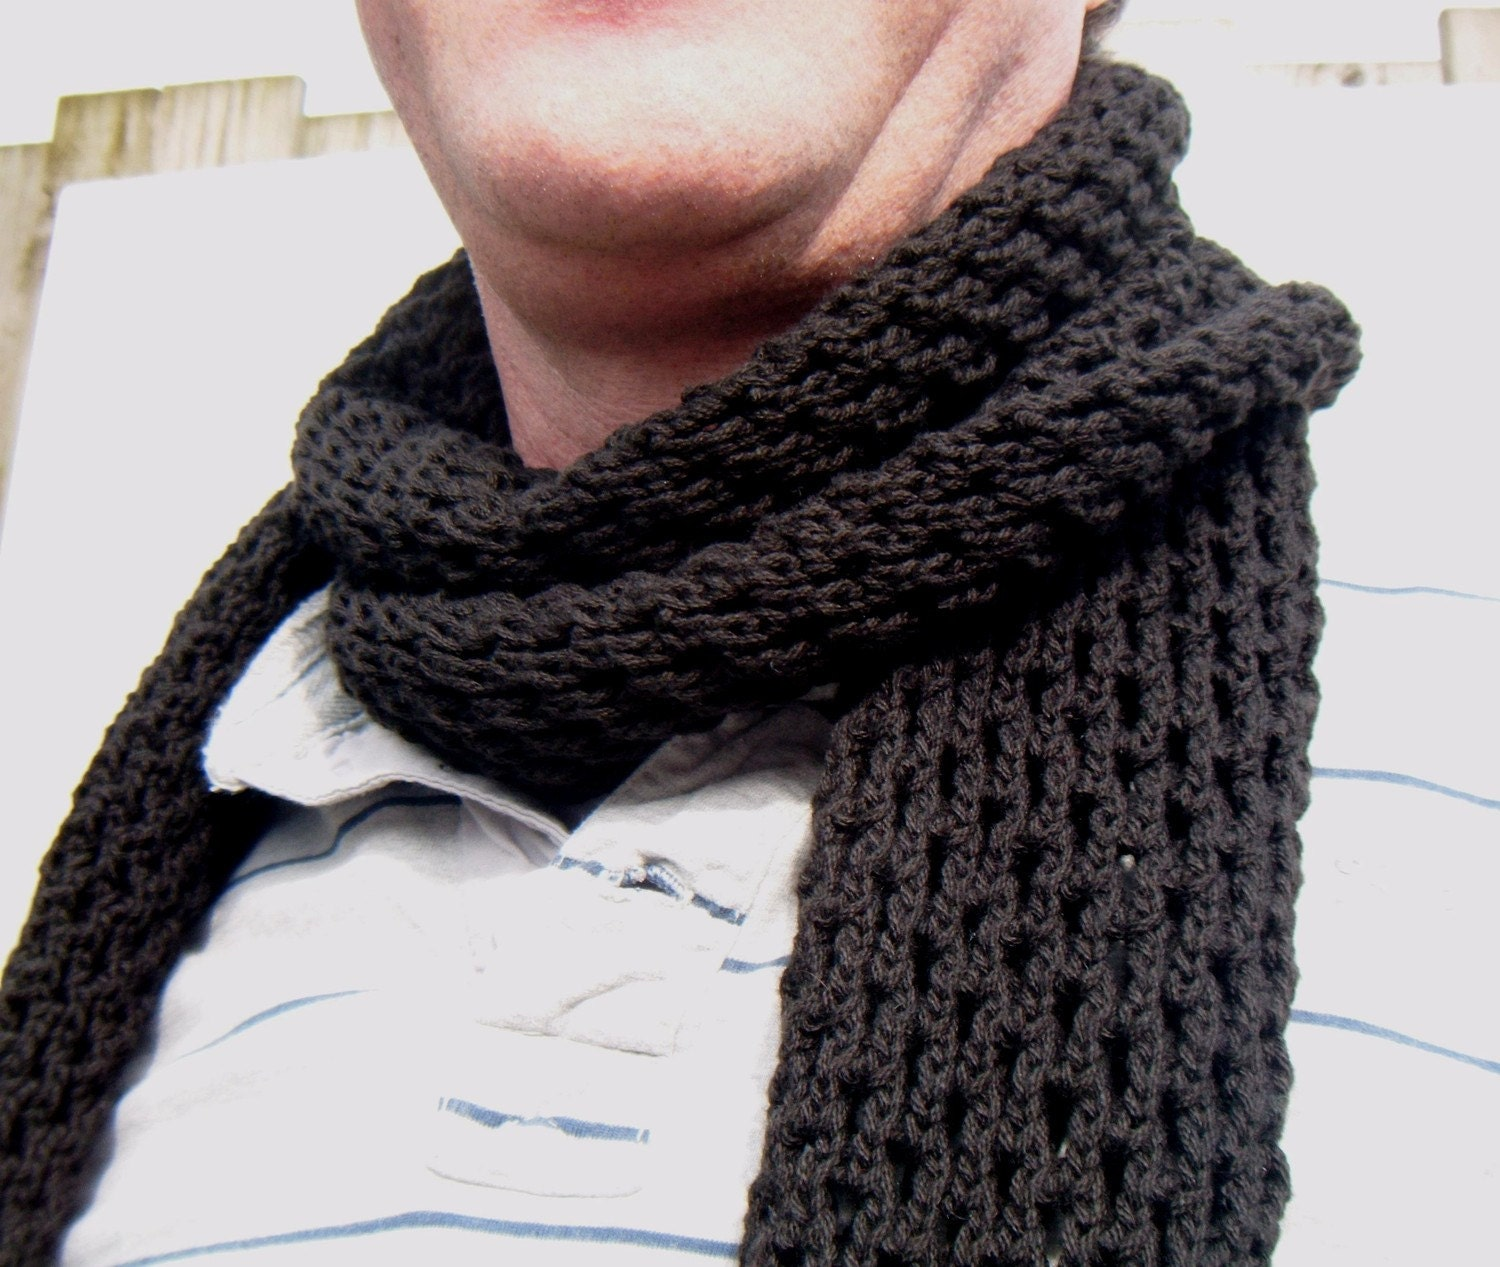 mens scarf hand knit openwork pattern black hole scarf from polclary Hand Knitted Men's Scarves